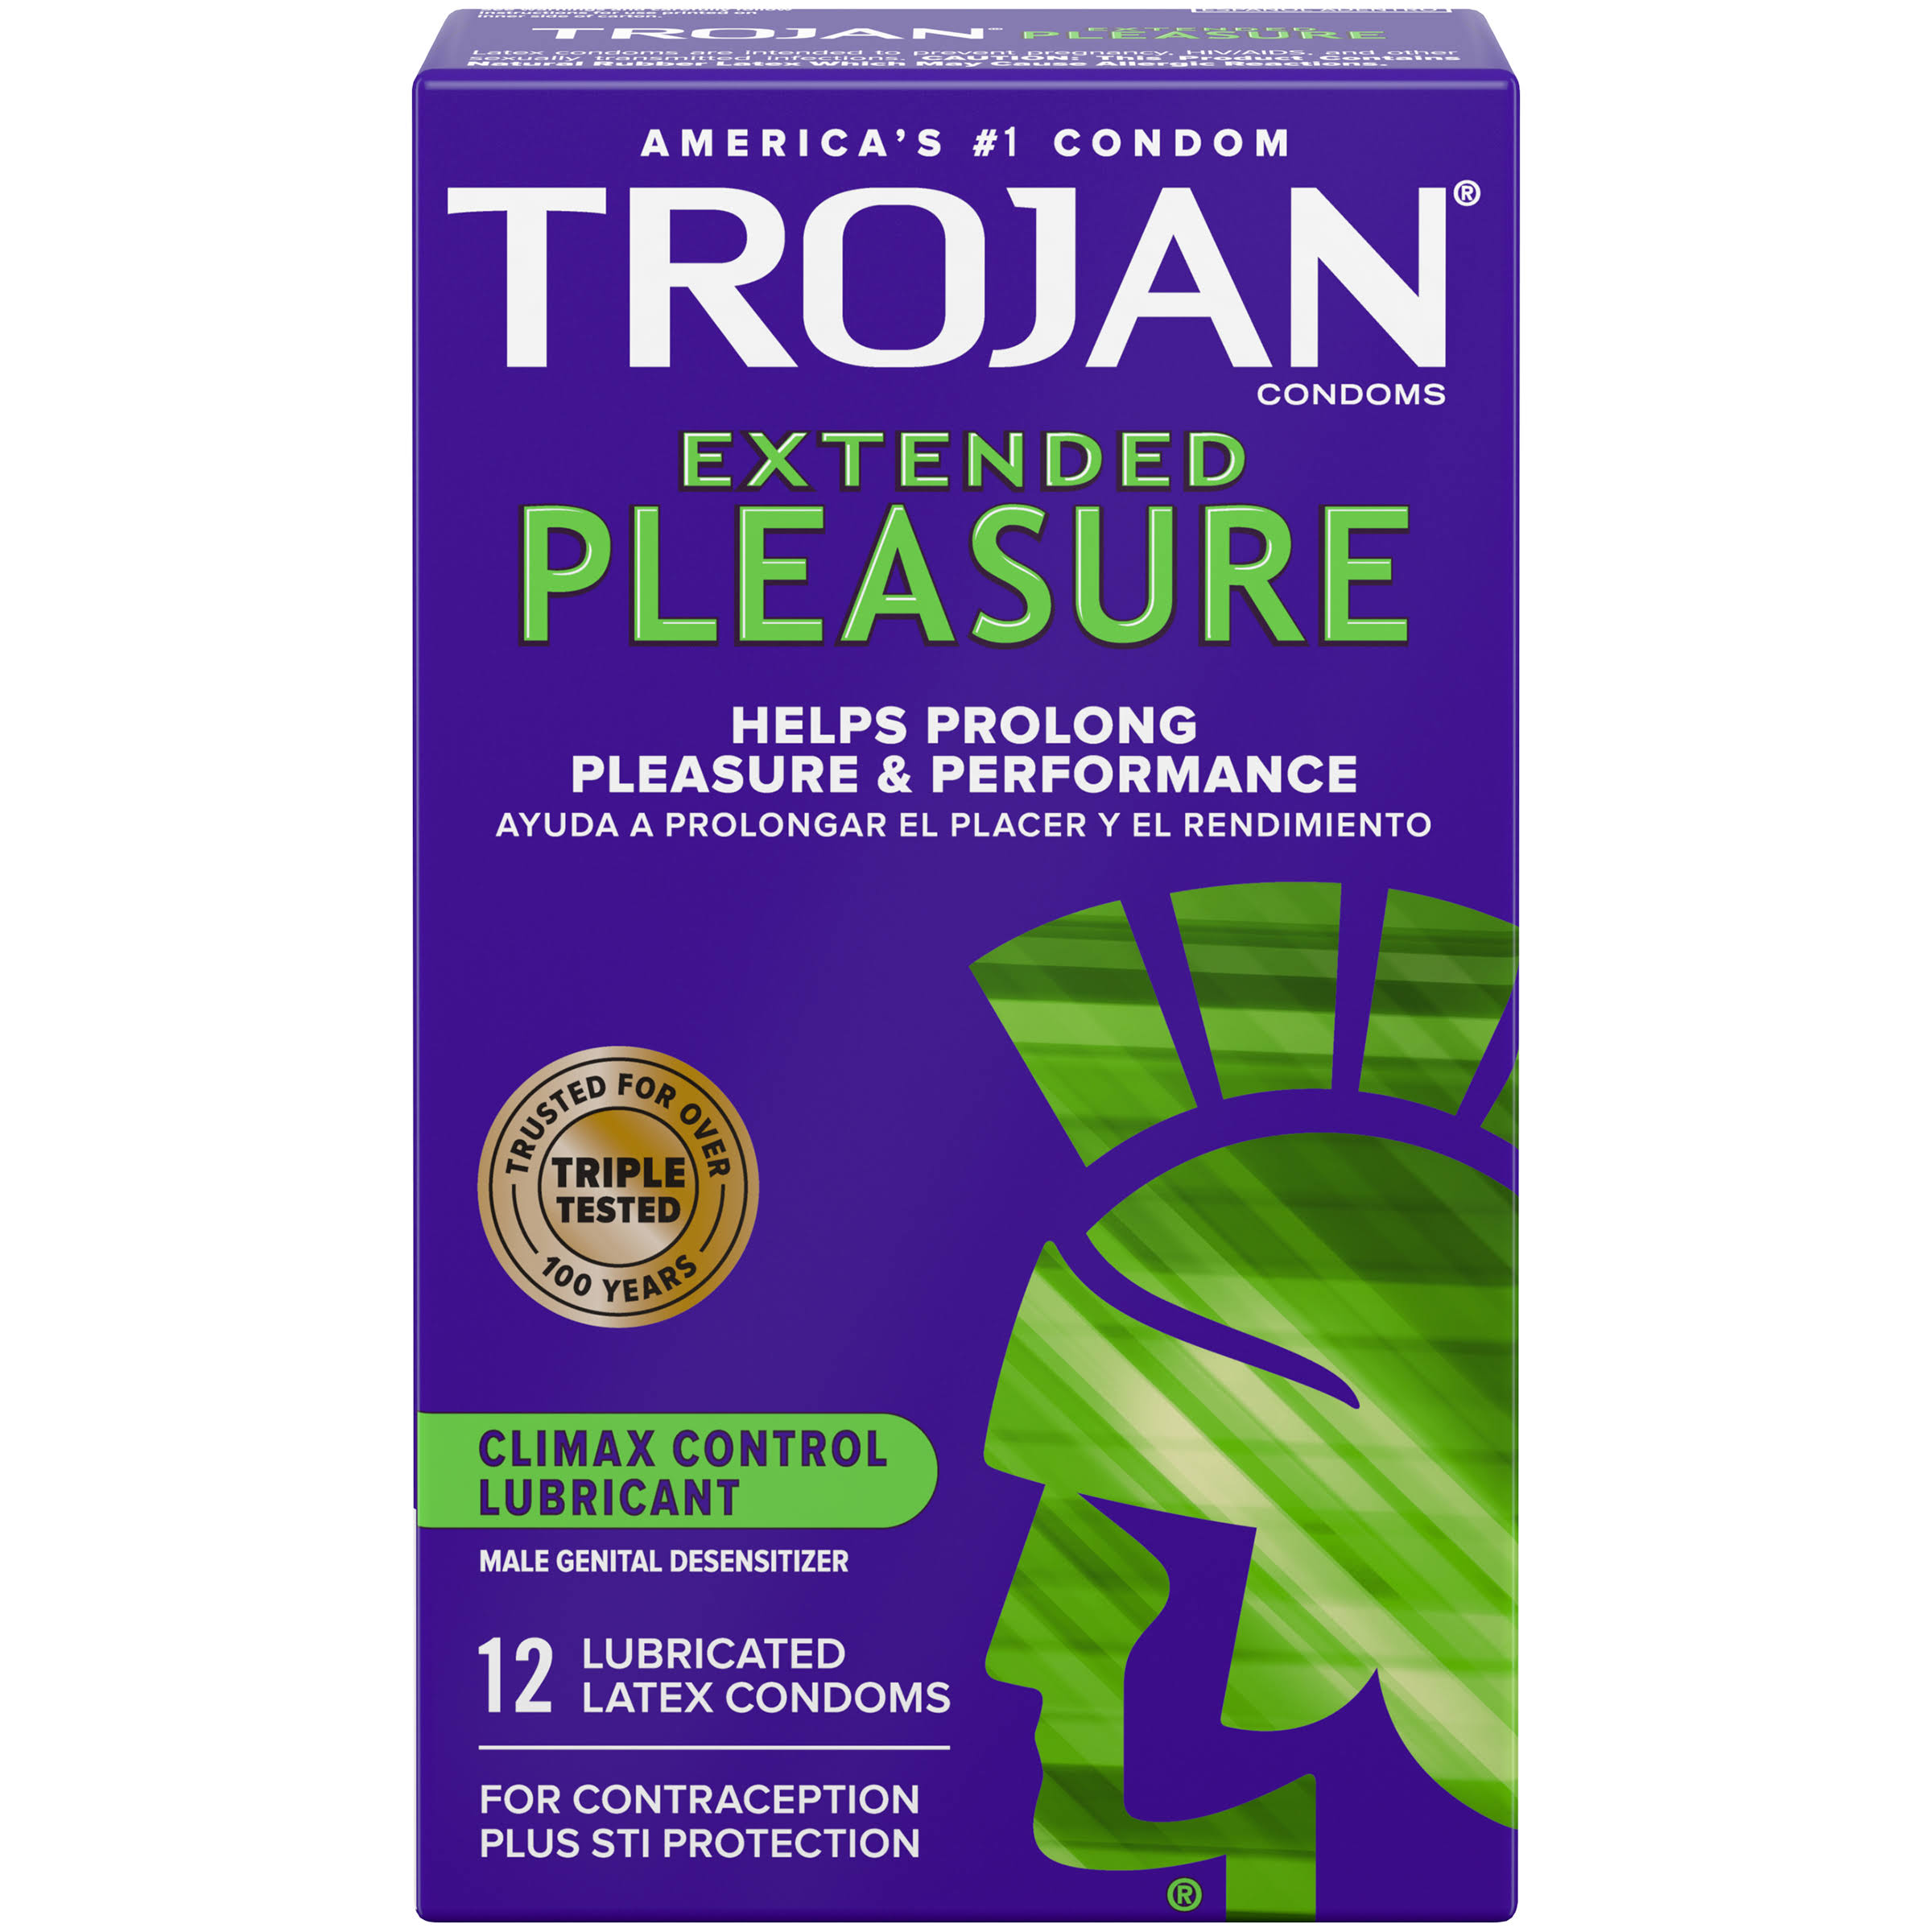 Trojan Extended Pleasure Climax Control Lubricant - 12 Latex Condoms